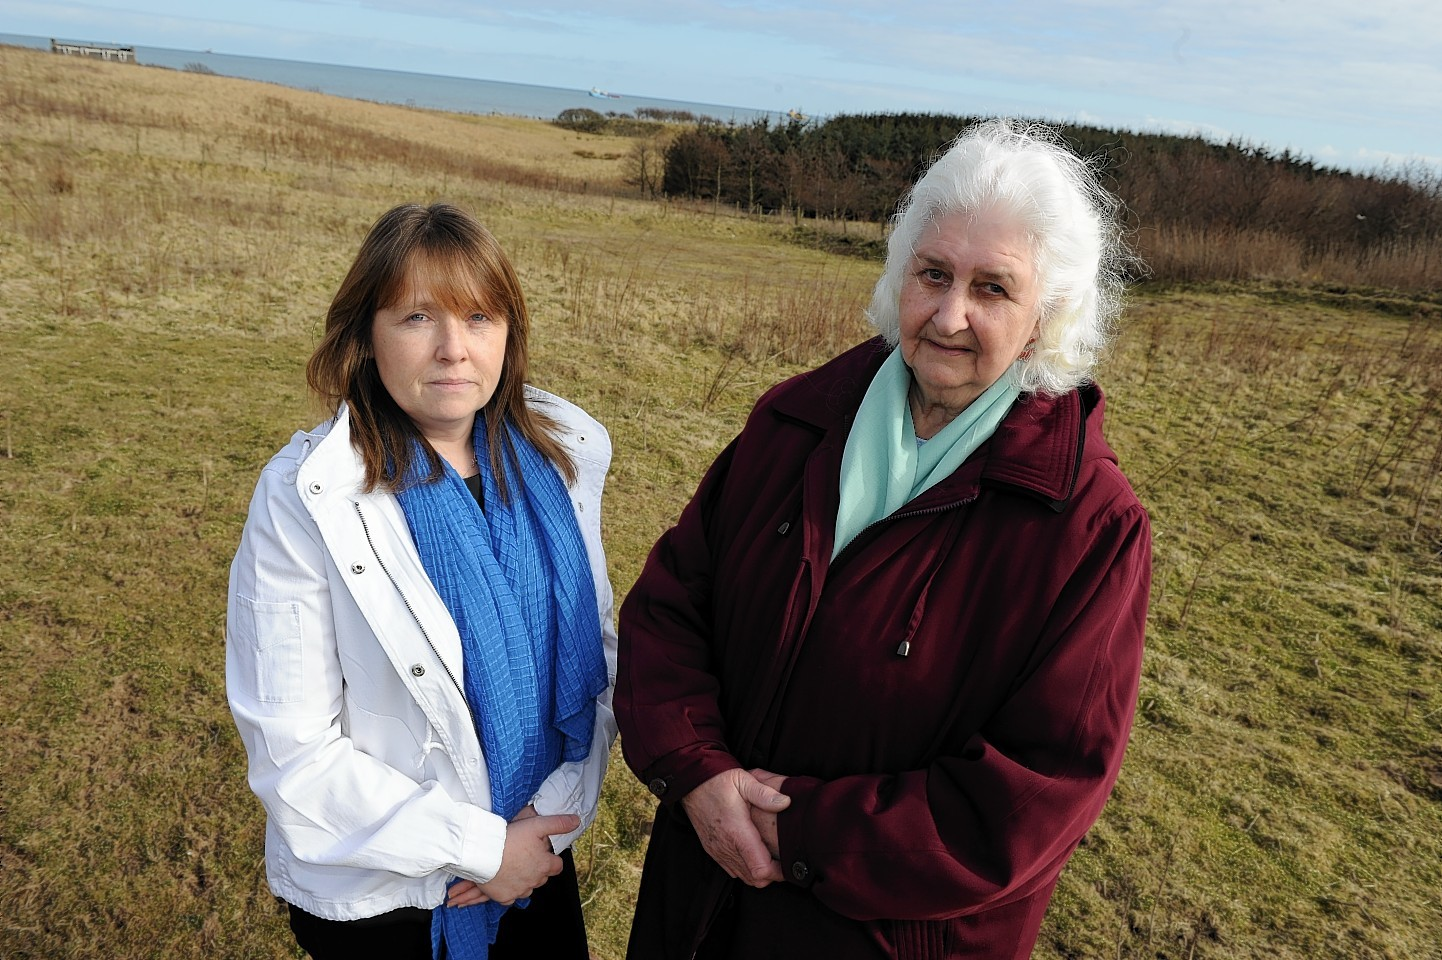 Objectors to the Blackdog plans, Nicola Brown and Edna Booth